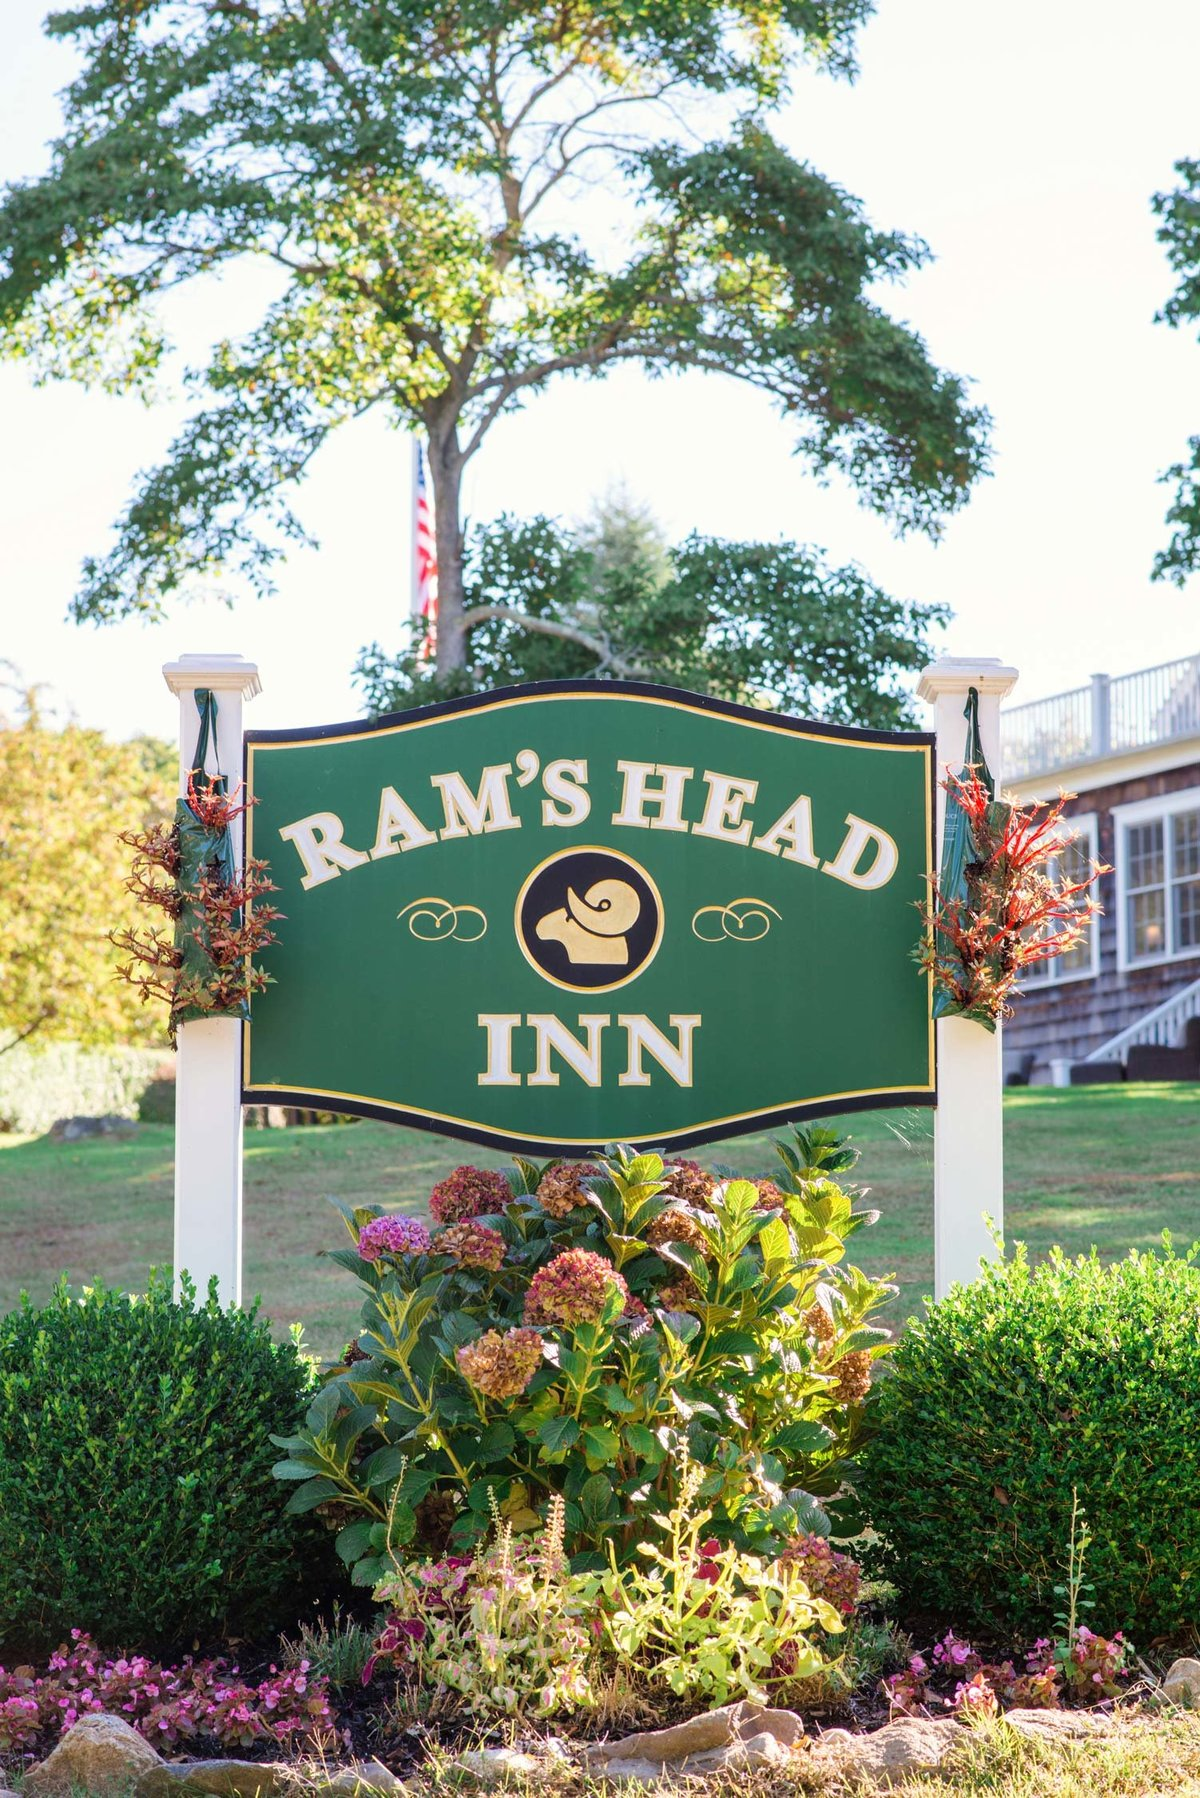 Ram's Head Inn sign at The Ram's Head Inn